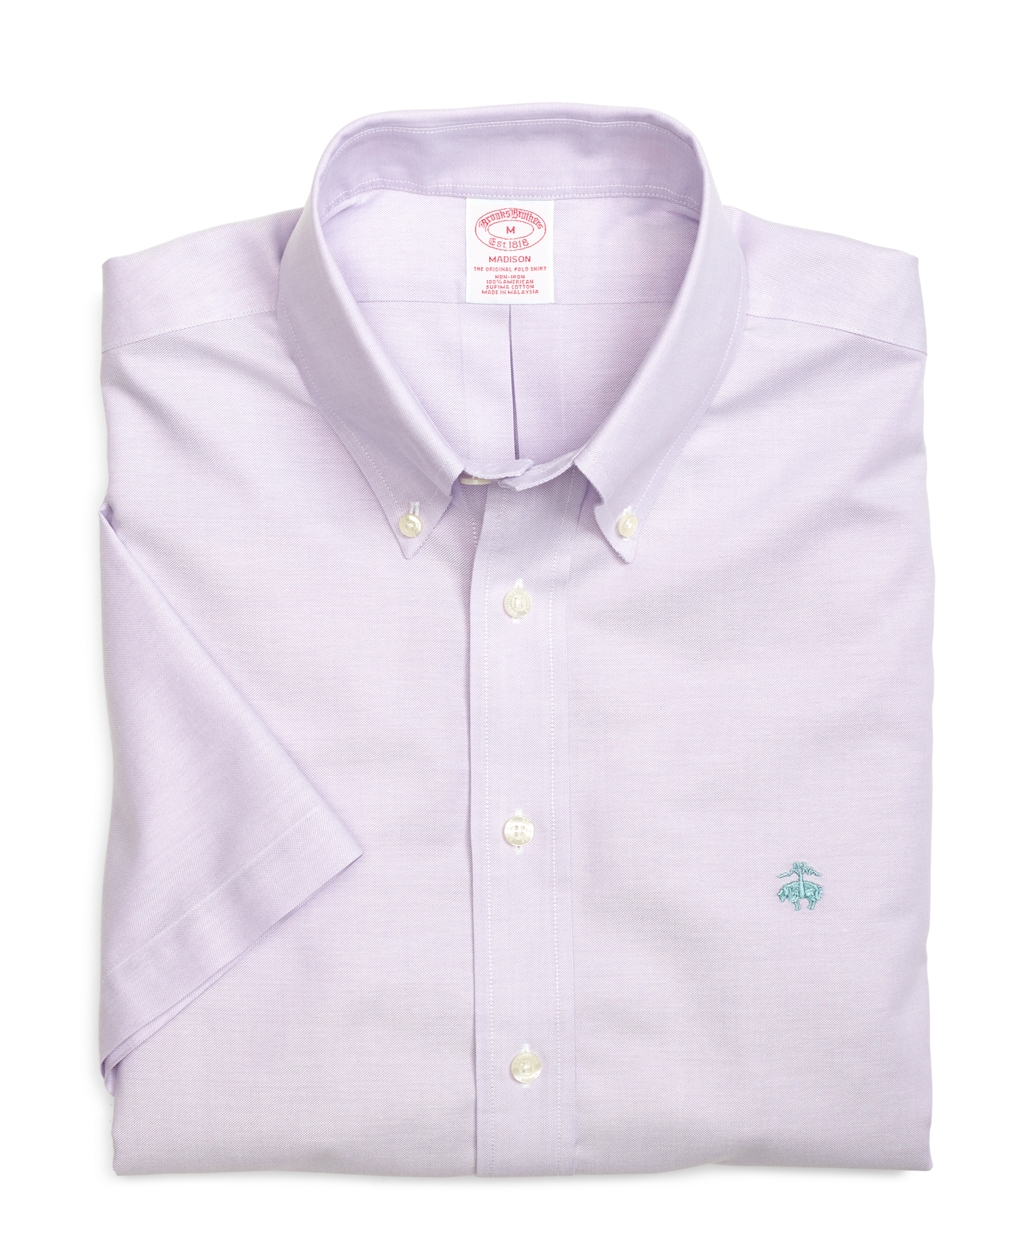 Brooks brothers non iron madison fit oxford short sleeve for Brooks brothers non iron shirts review